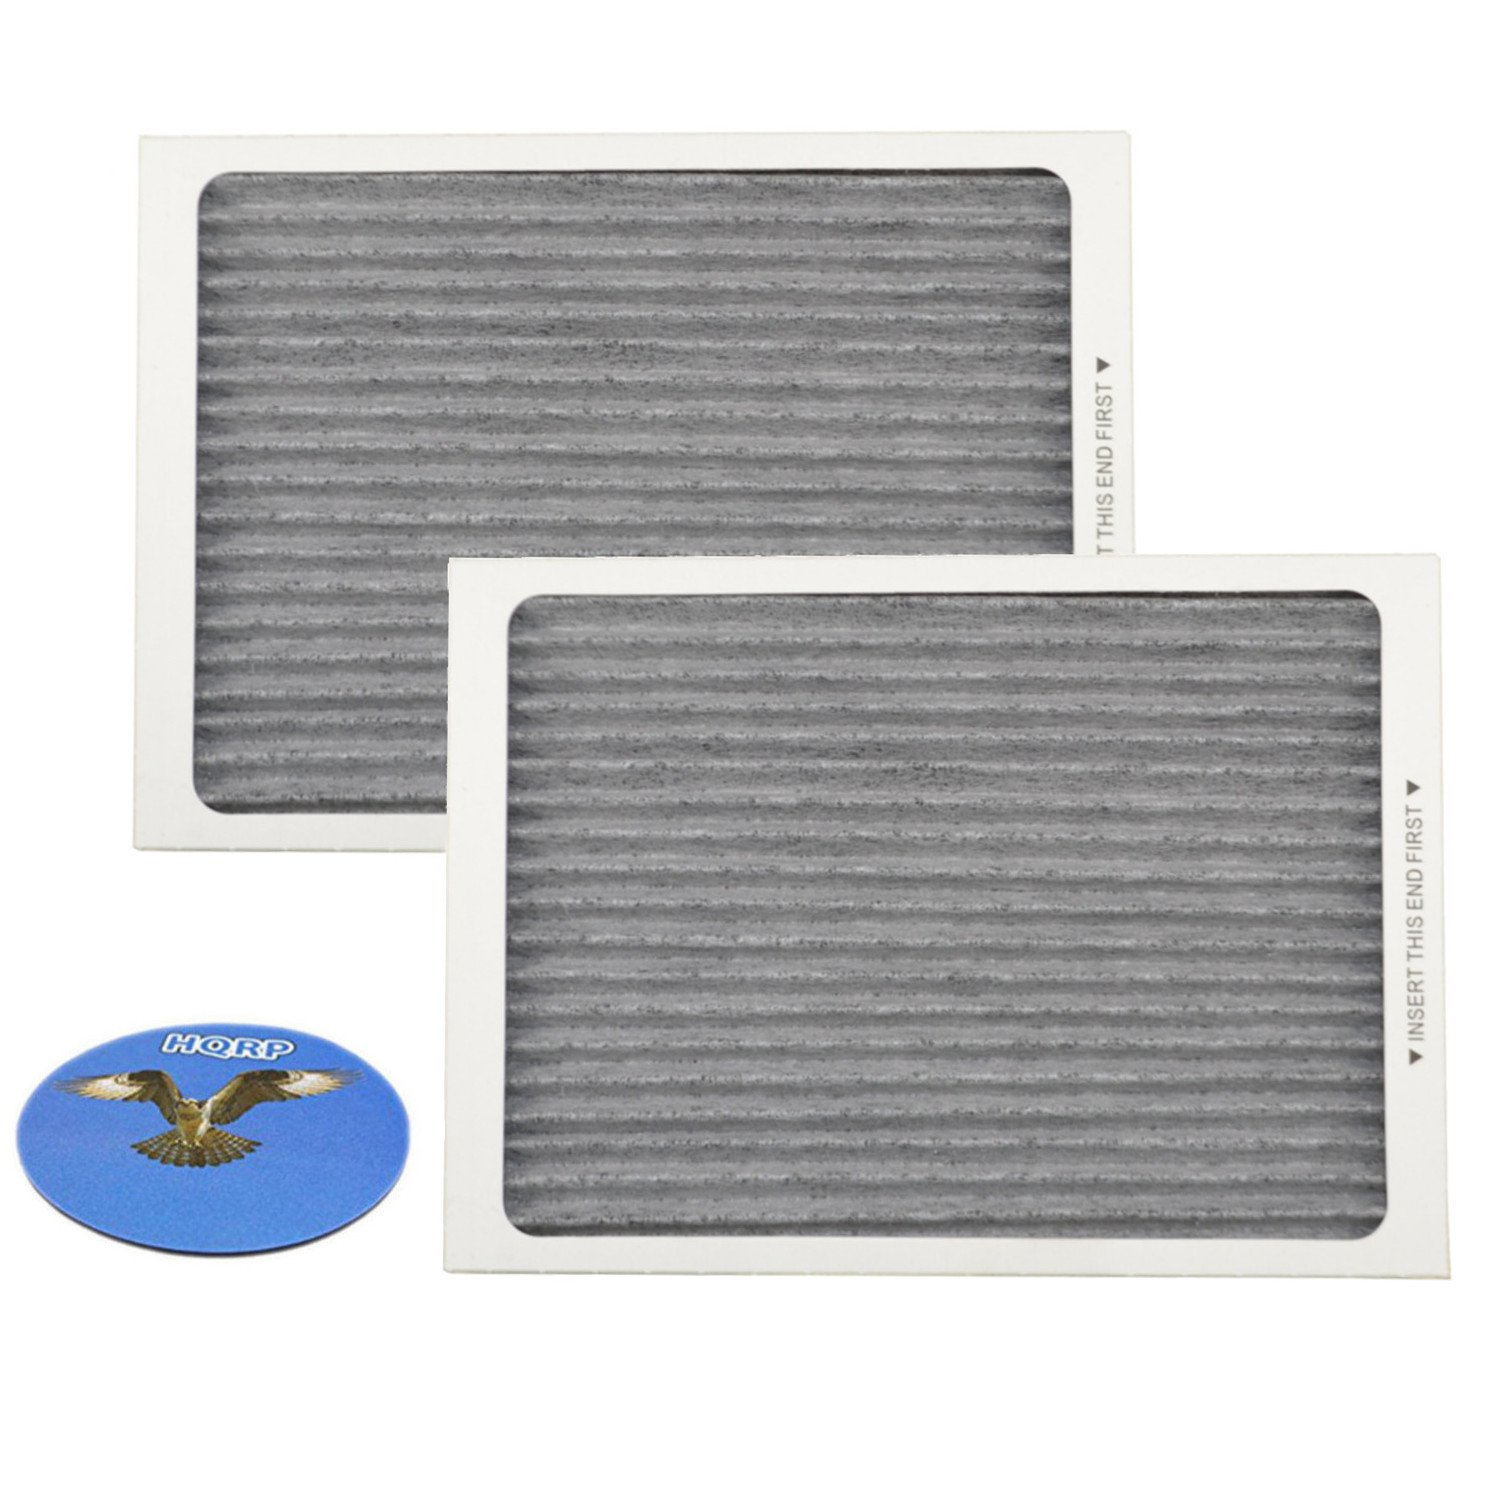 HQRP Carbon Air Filter (2-pack) for Frigidaire Gallery & Professional series Side-by-Side / French door Refrigerators, EAFCBF PAULTRA Replacement + HQRP Coaster